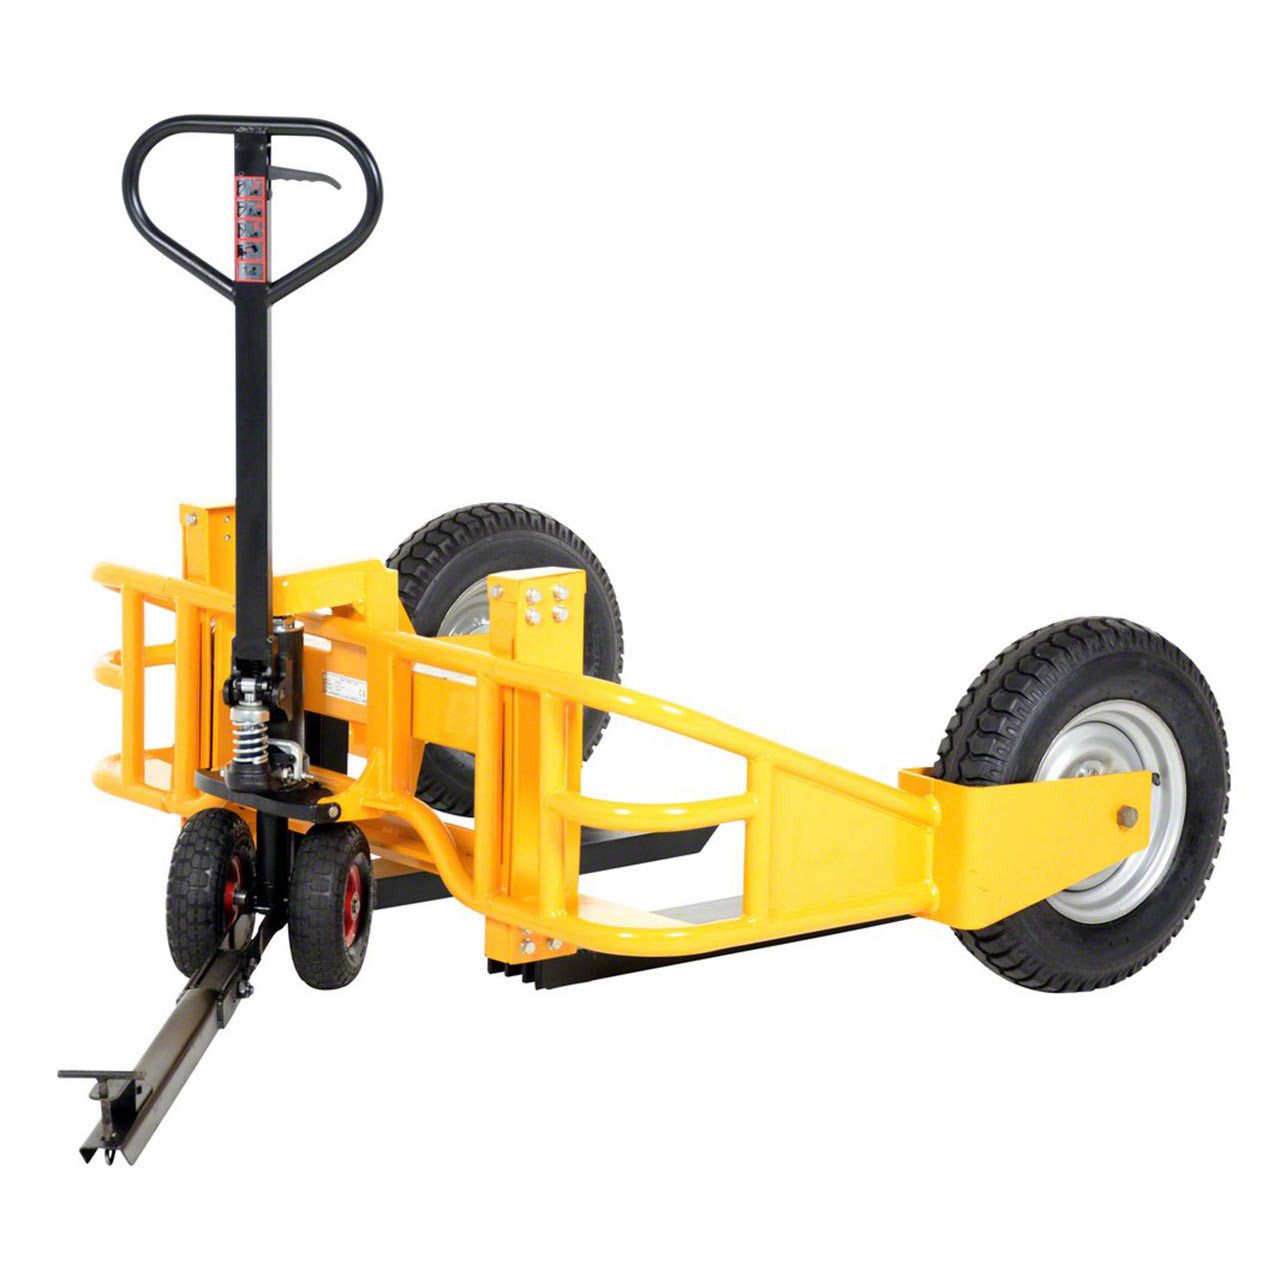 The optional manual all terrain pallet jack tow package accessory attaches and detaches easily